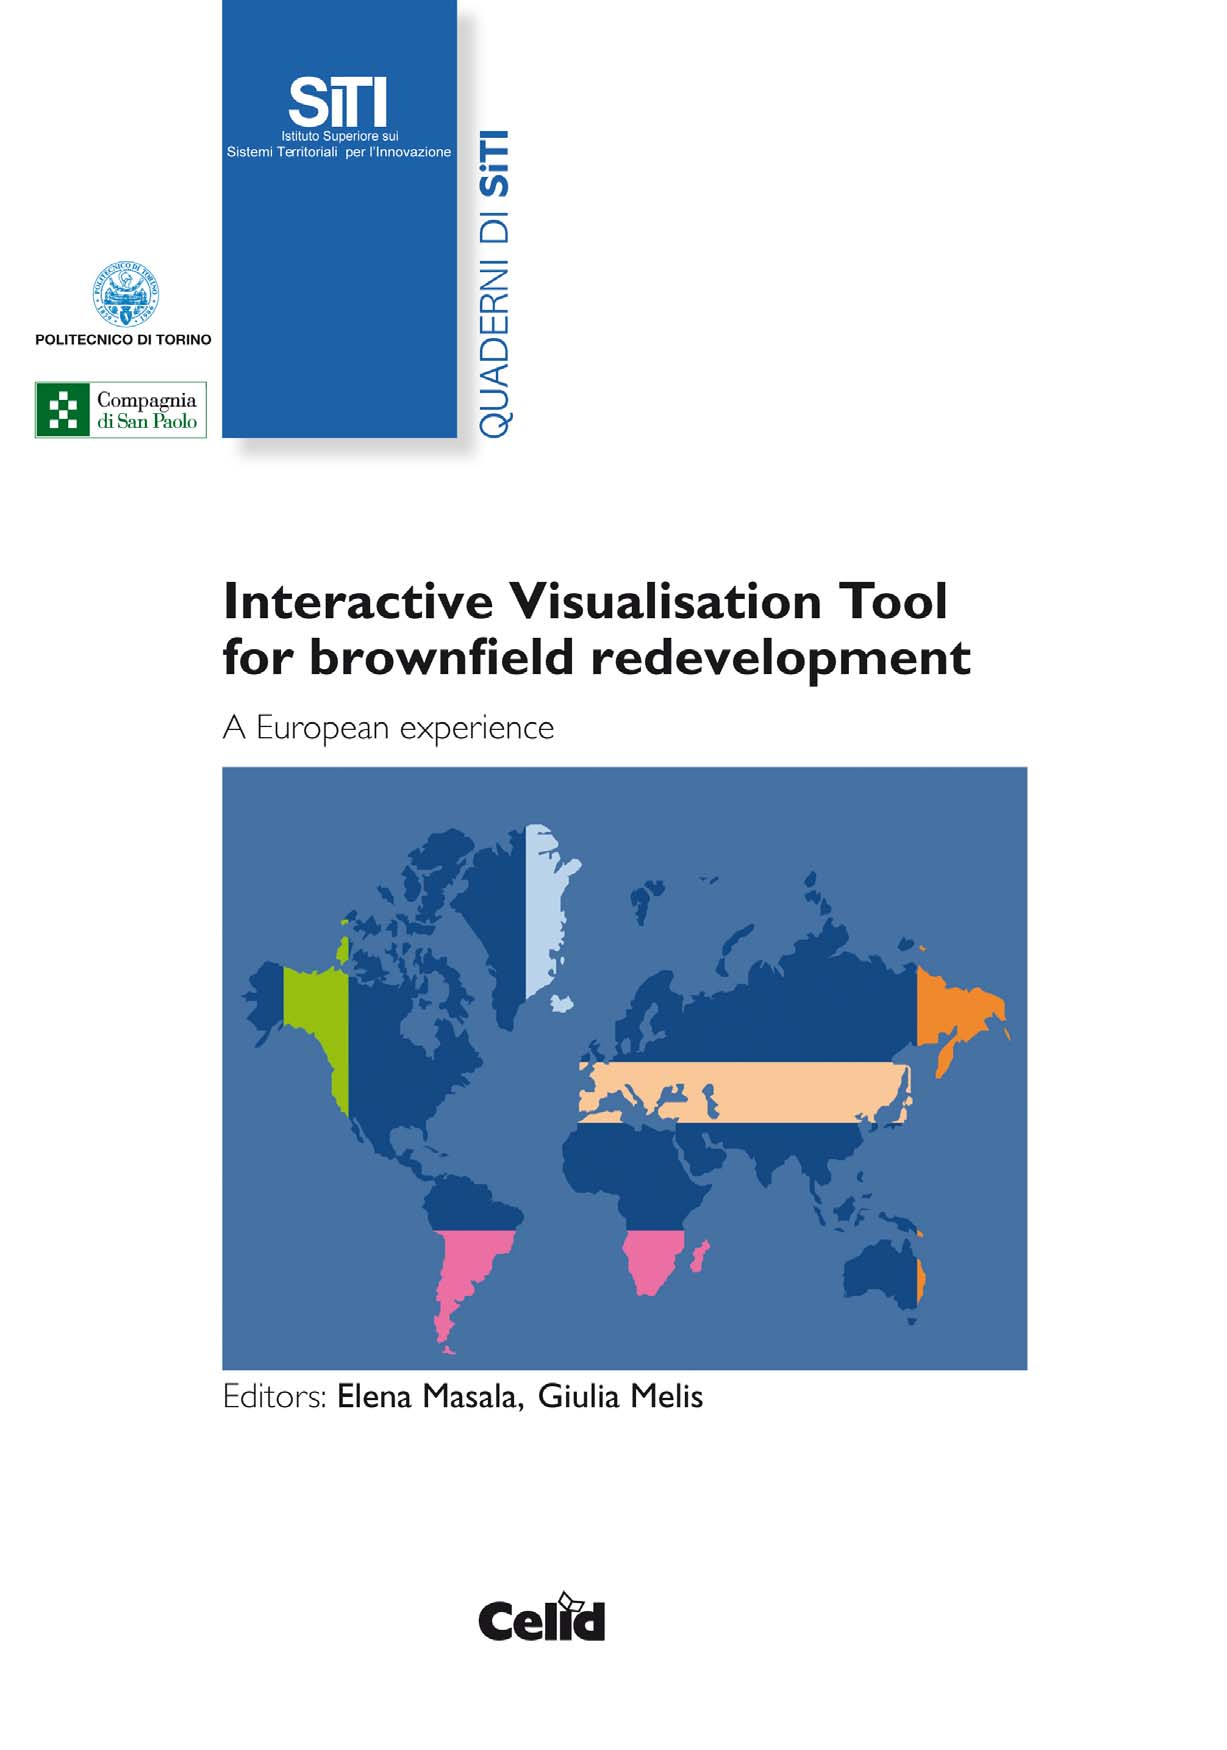 """Interactive Visualisation Tool for brownfield redevelopment - A European experience"""